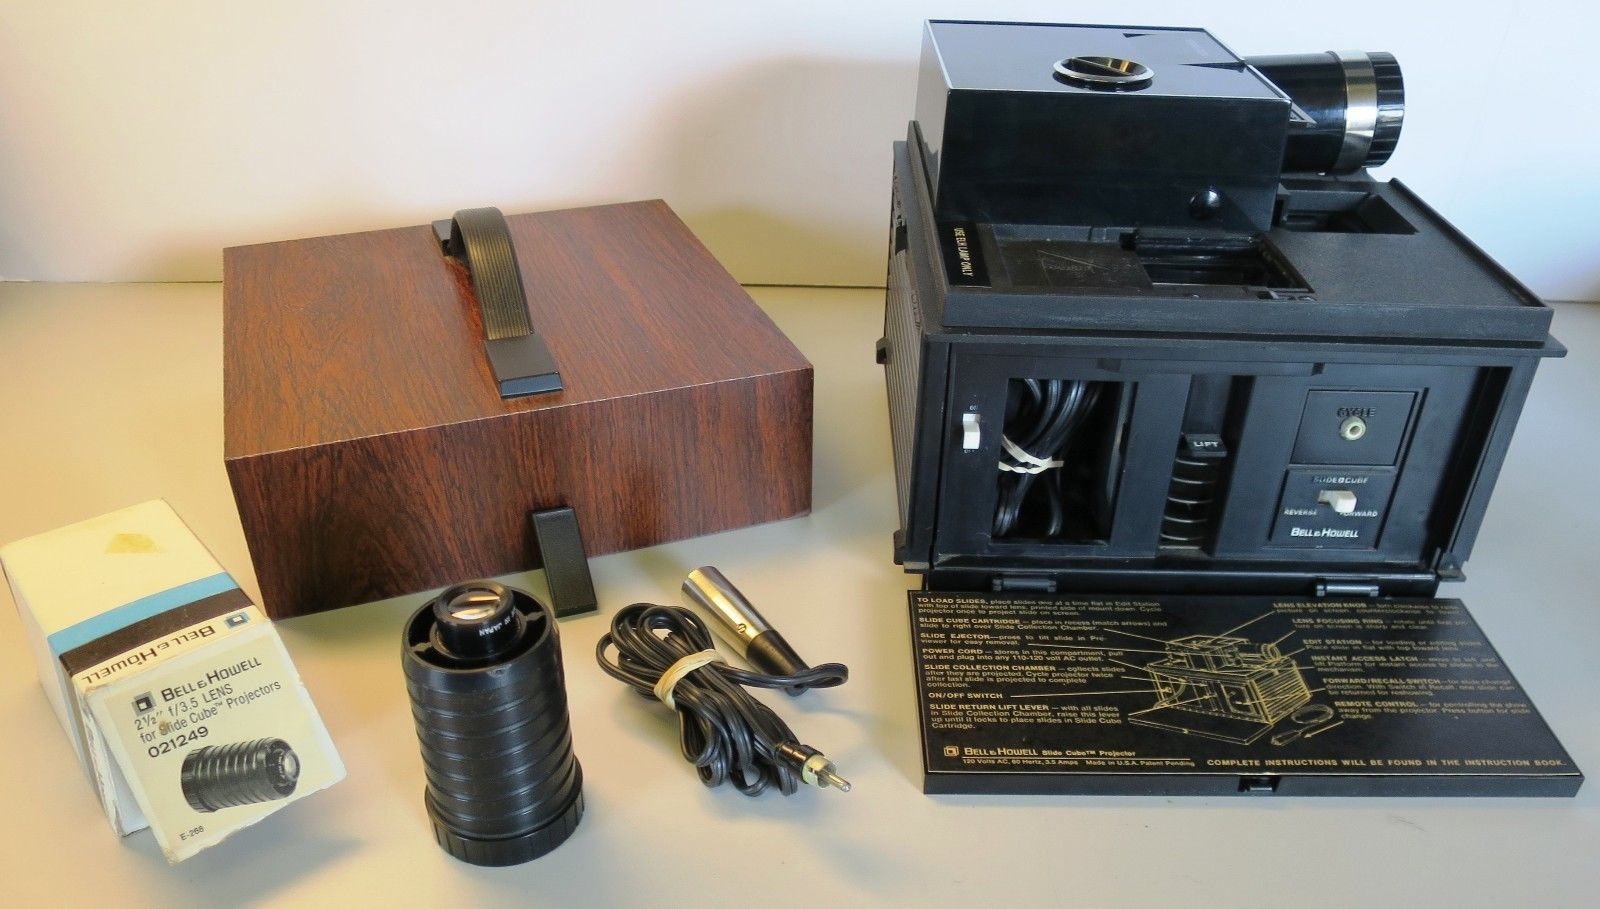 bell and howell slide cube projector wremote and slide case extra lense